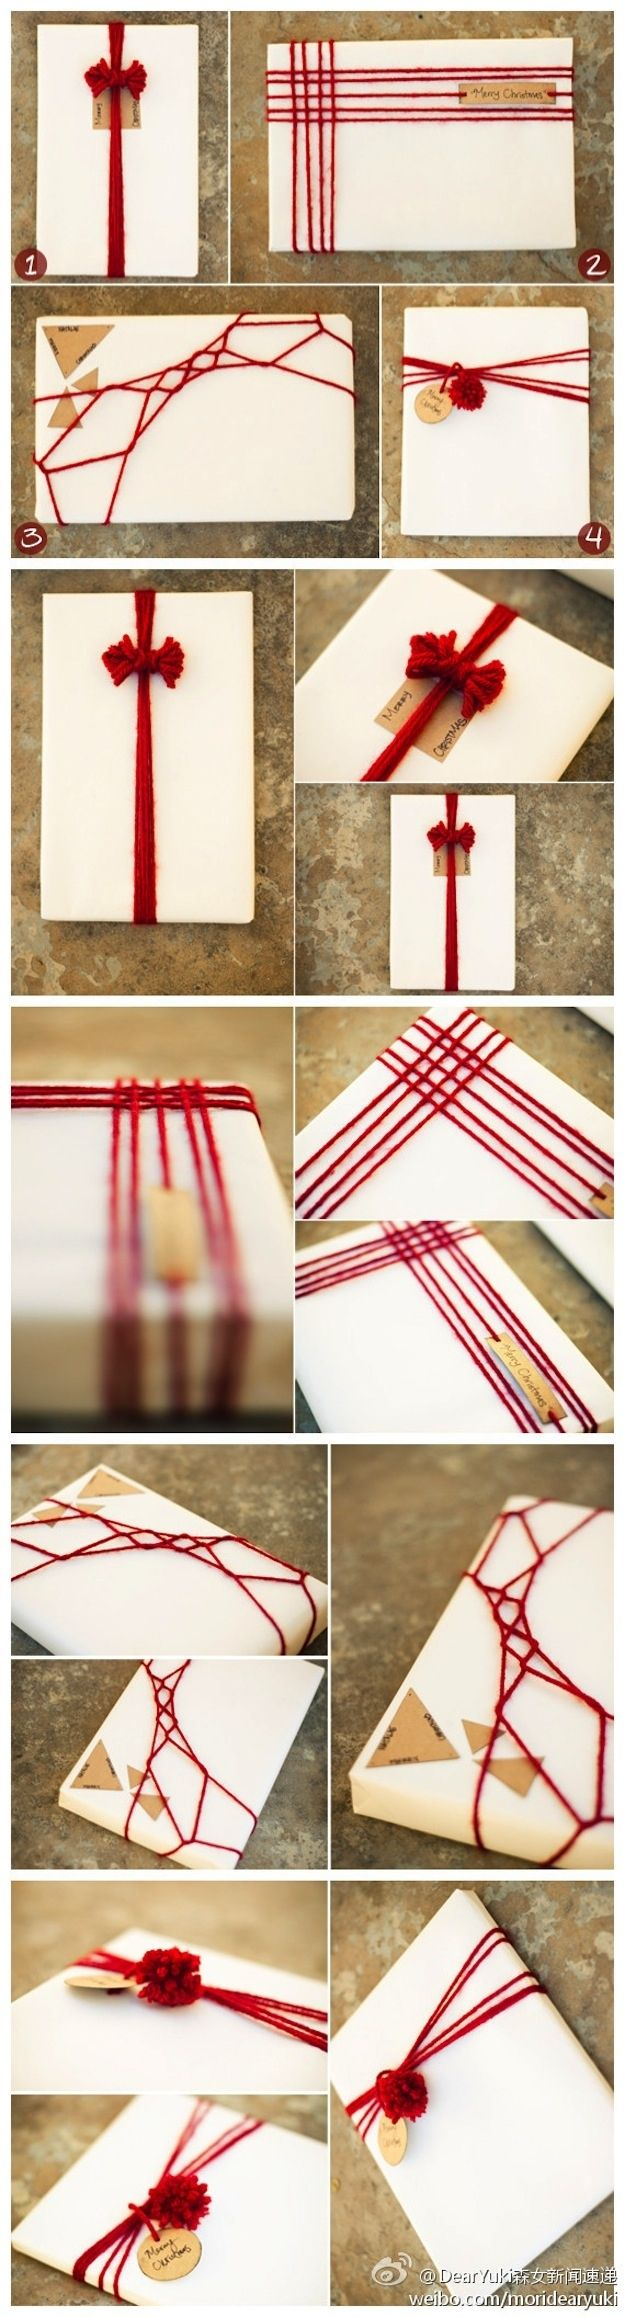 Yarn Gift Wrapping.